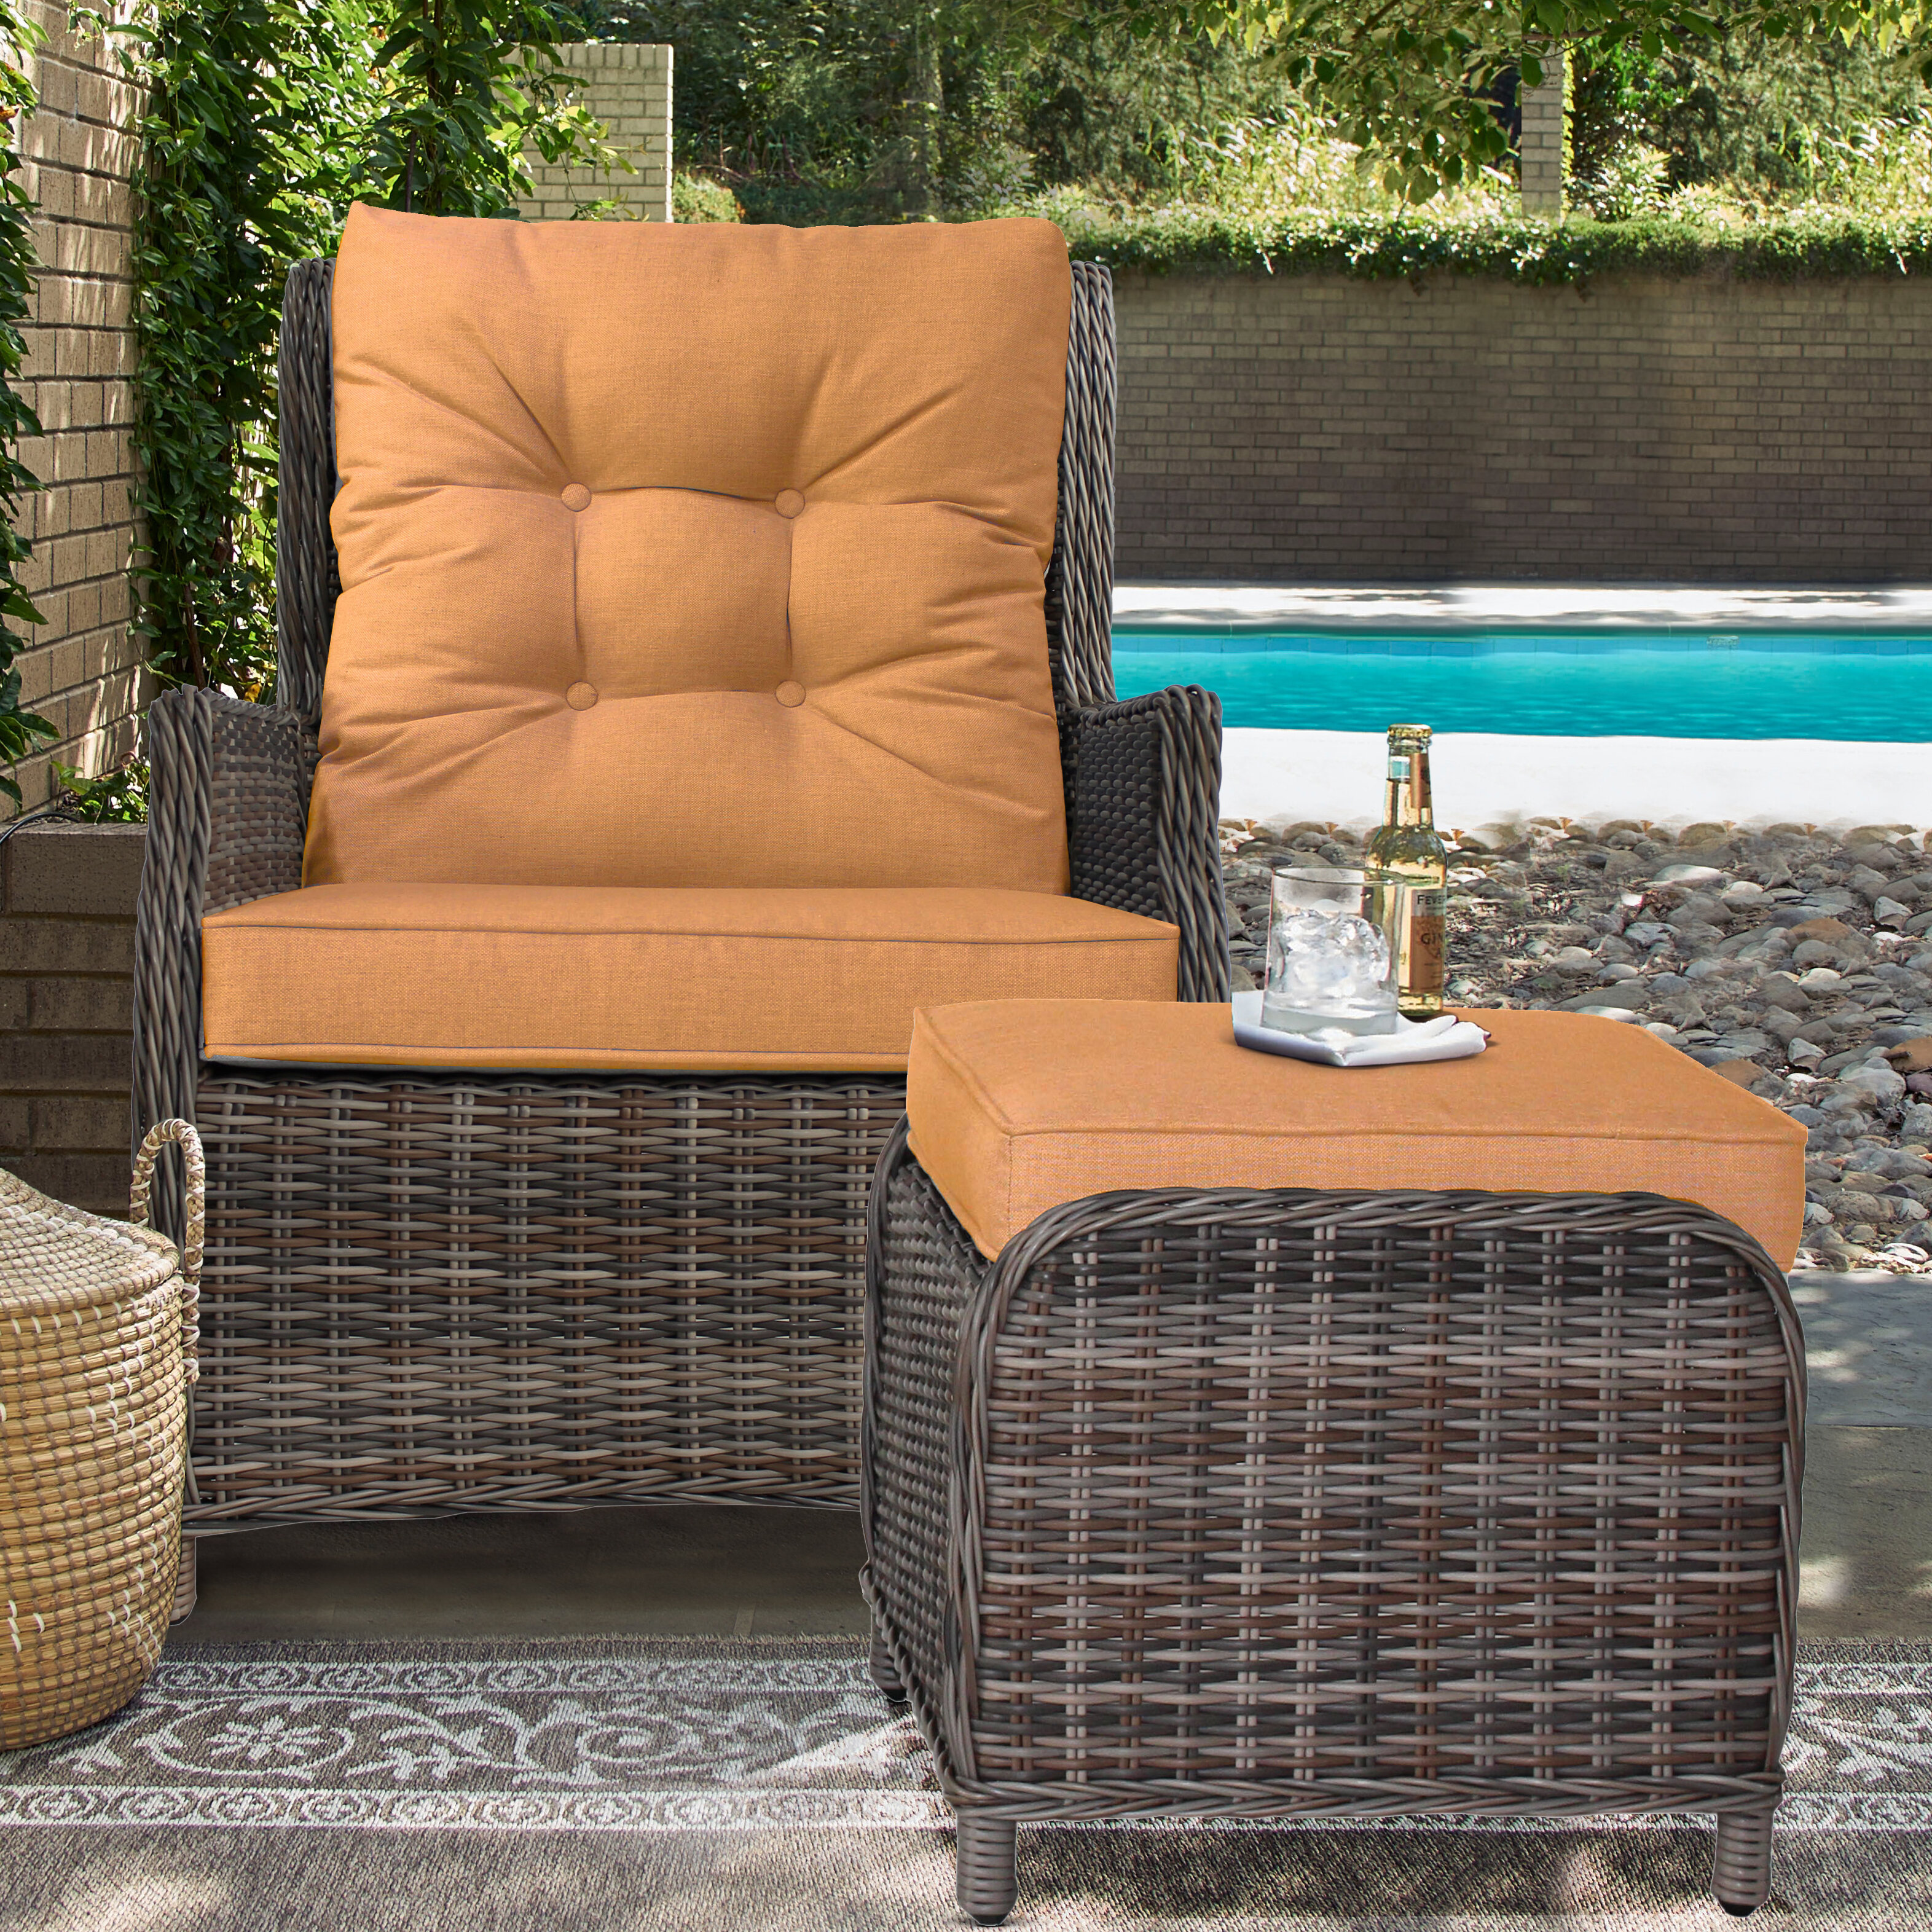 Admirable Cardoza Outdoor Recliner Patio Chair With Cushions And Ottoman Cjindustries Chair Design For Home Cjindustriesco